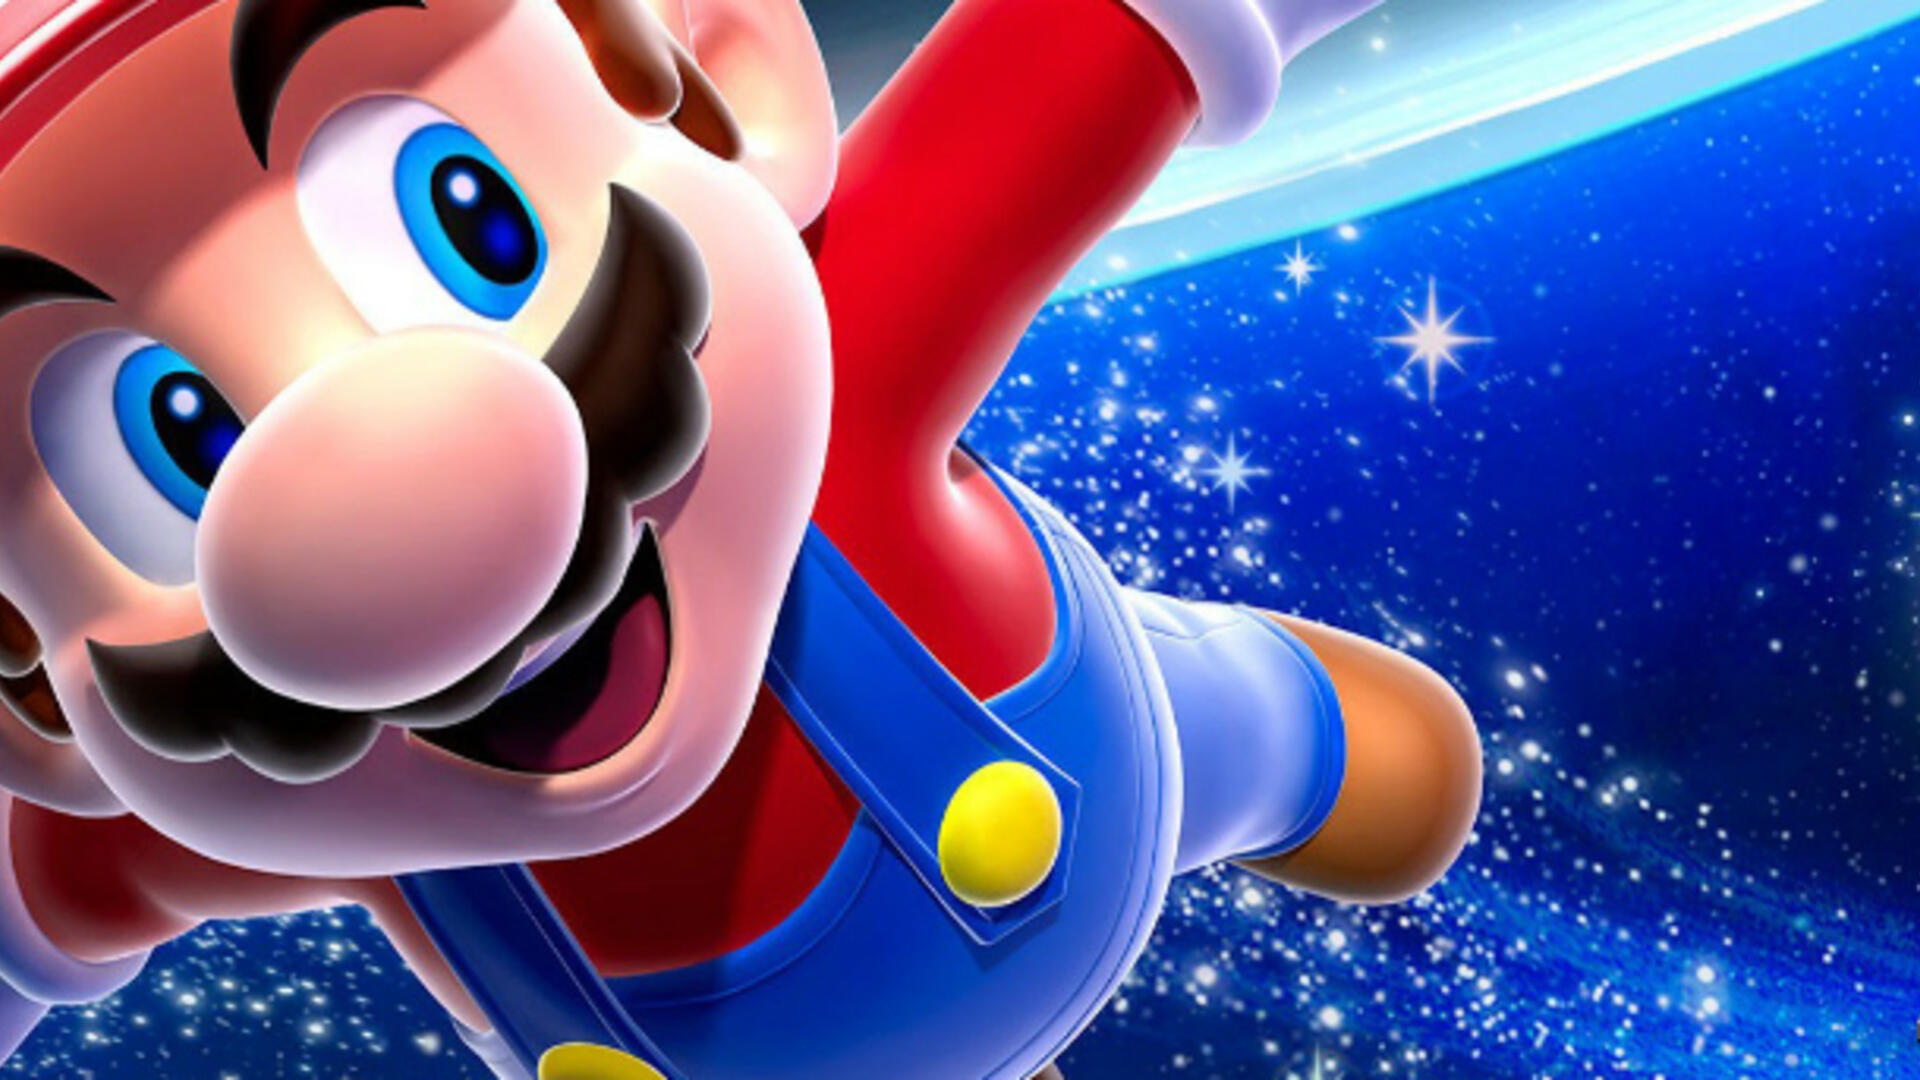 Super Mario Galaxy is Out Now on NVIDIA Shield in China, so